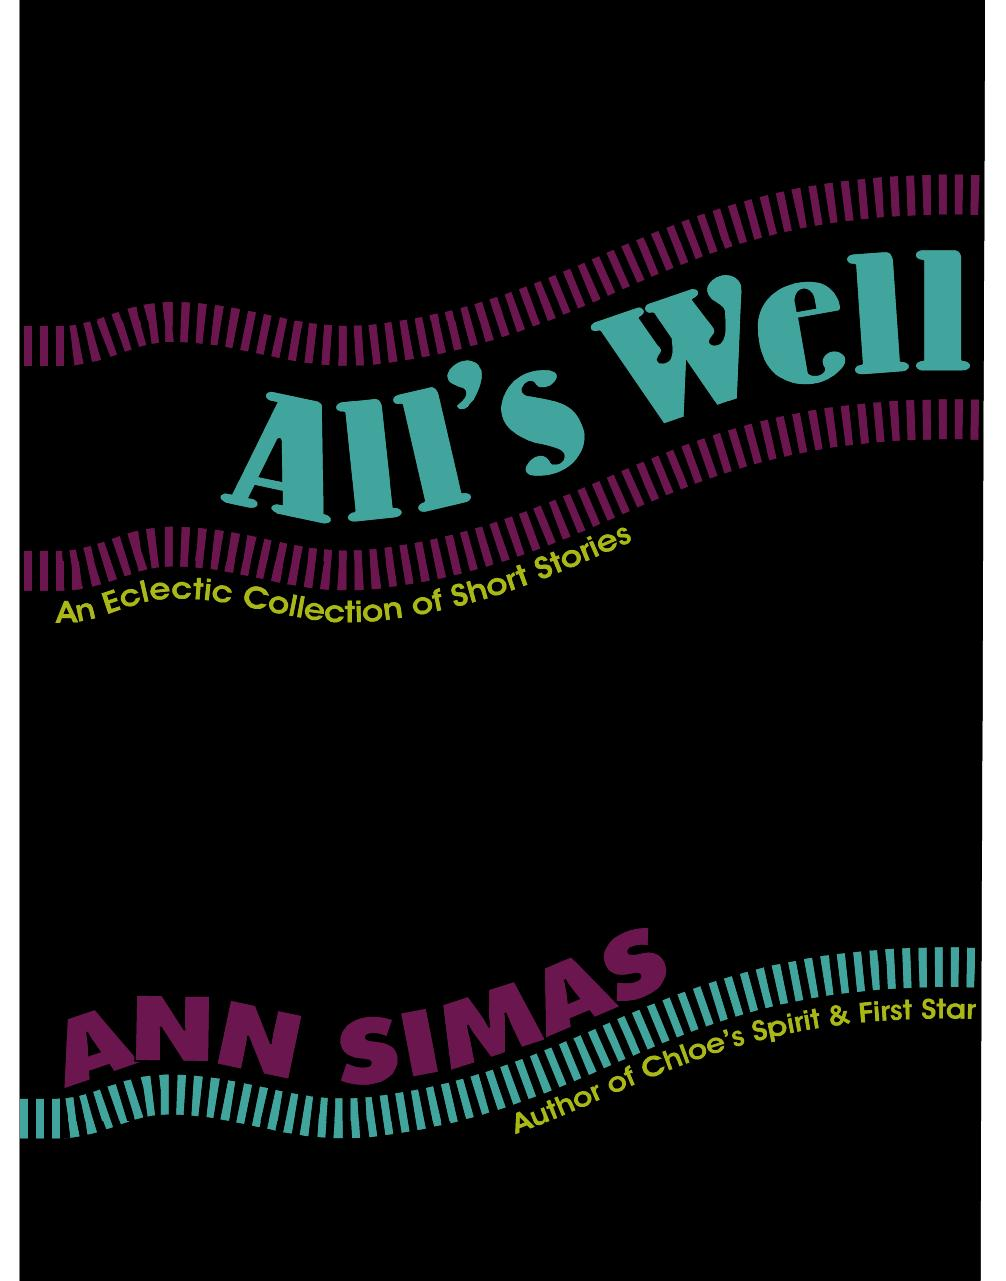 All's Well: An Eclectic Collection of Short Stories